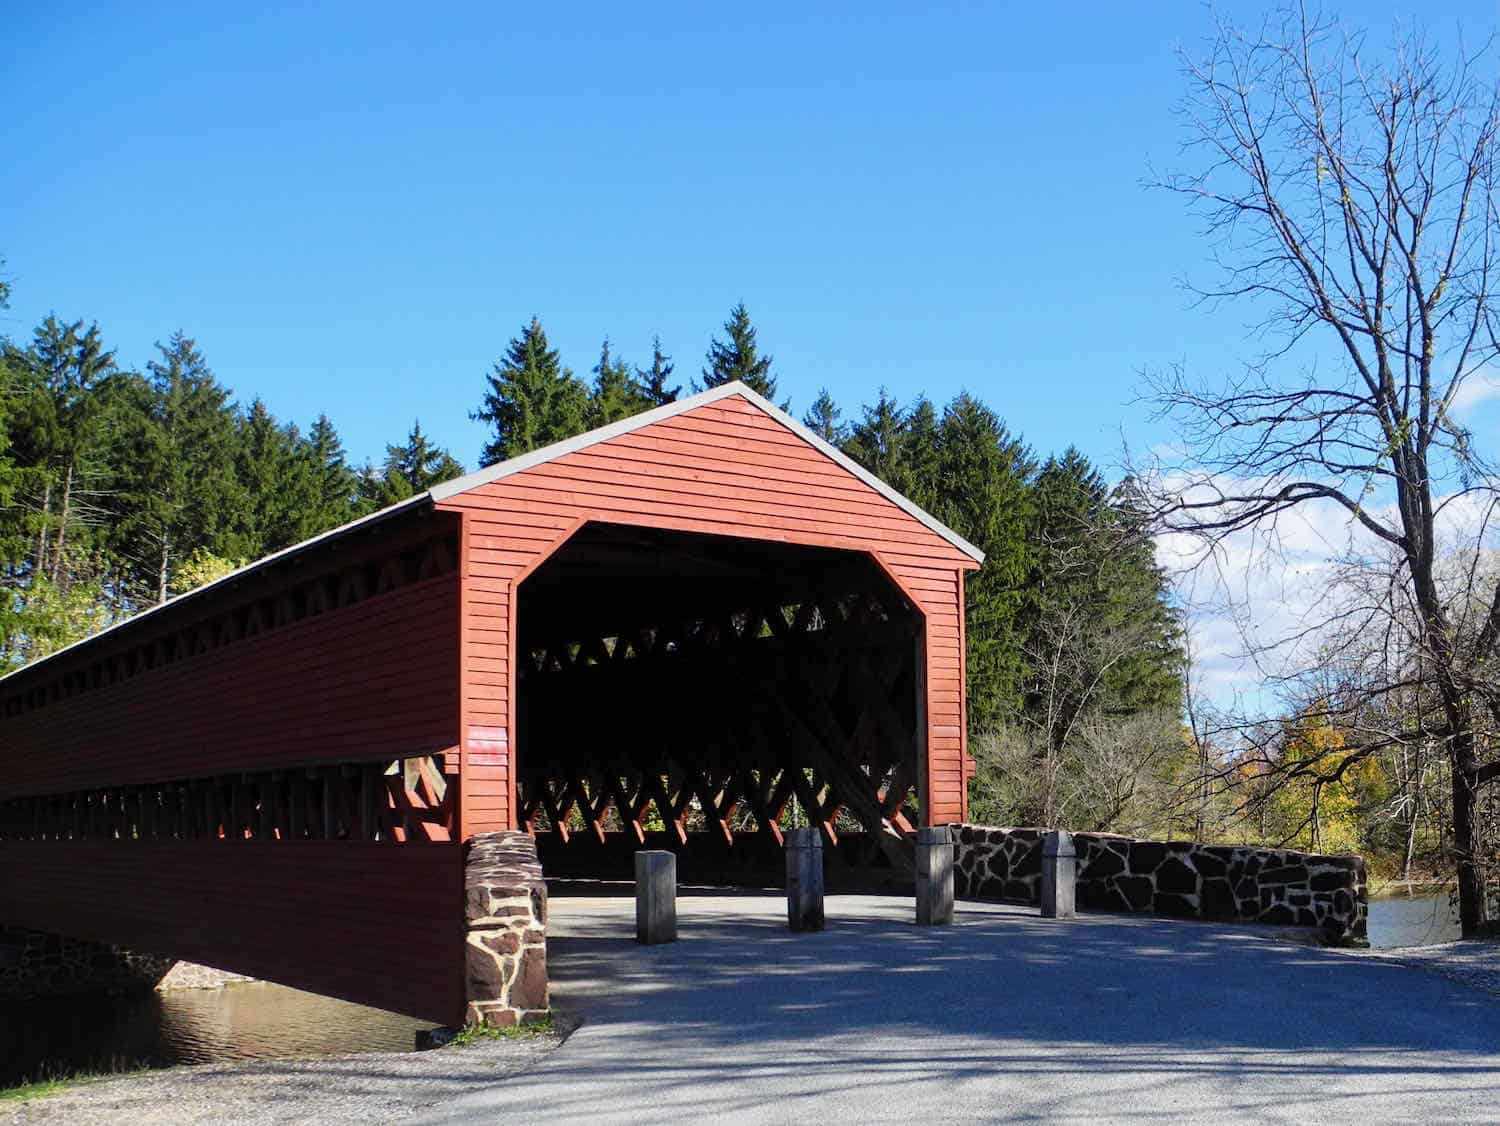 red covered bridge surrounded by trees with a blue sky overhead